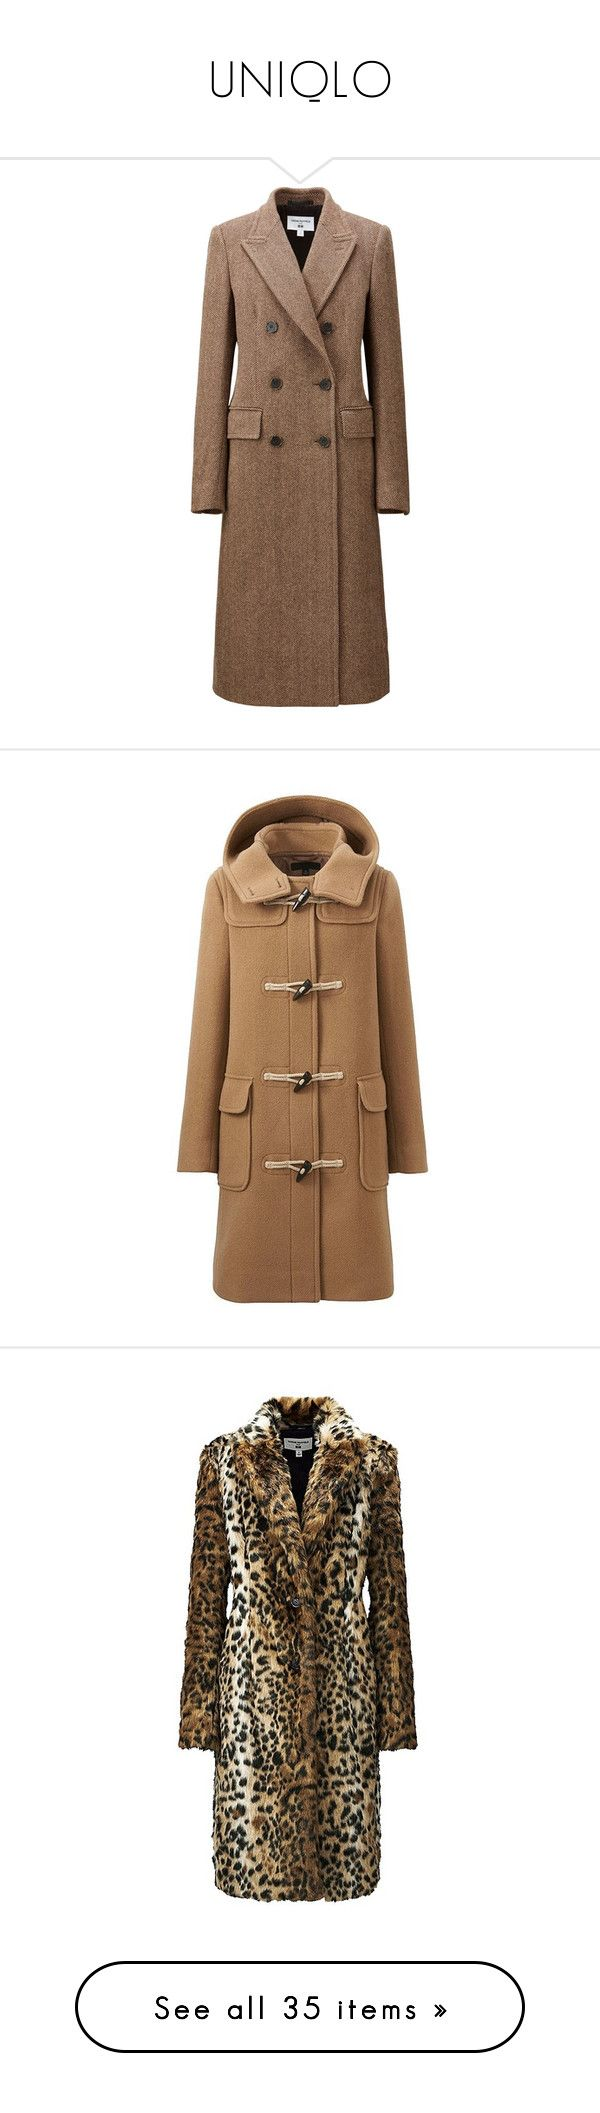 """UNIQLO"" by jckyleeah ❤ liked on Polyvore featuring uniqlo, outerwear, coats, brown, longline coat, long lapel coat, brown double breasted coat, pattern coat, uniqlo coats and toggle coats"